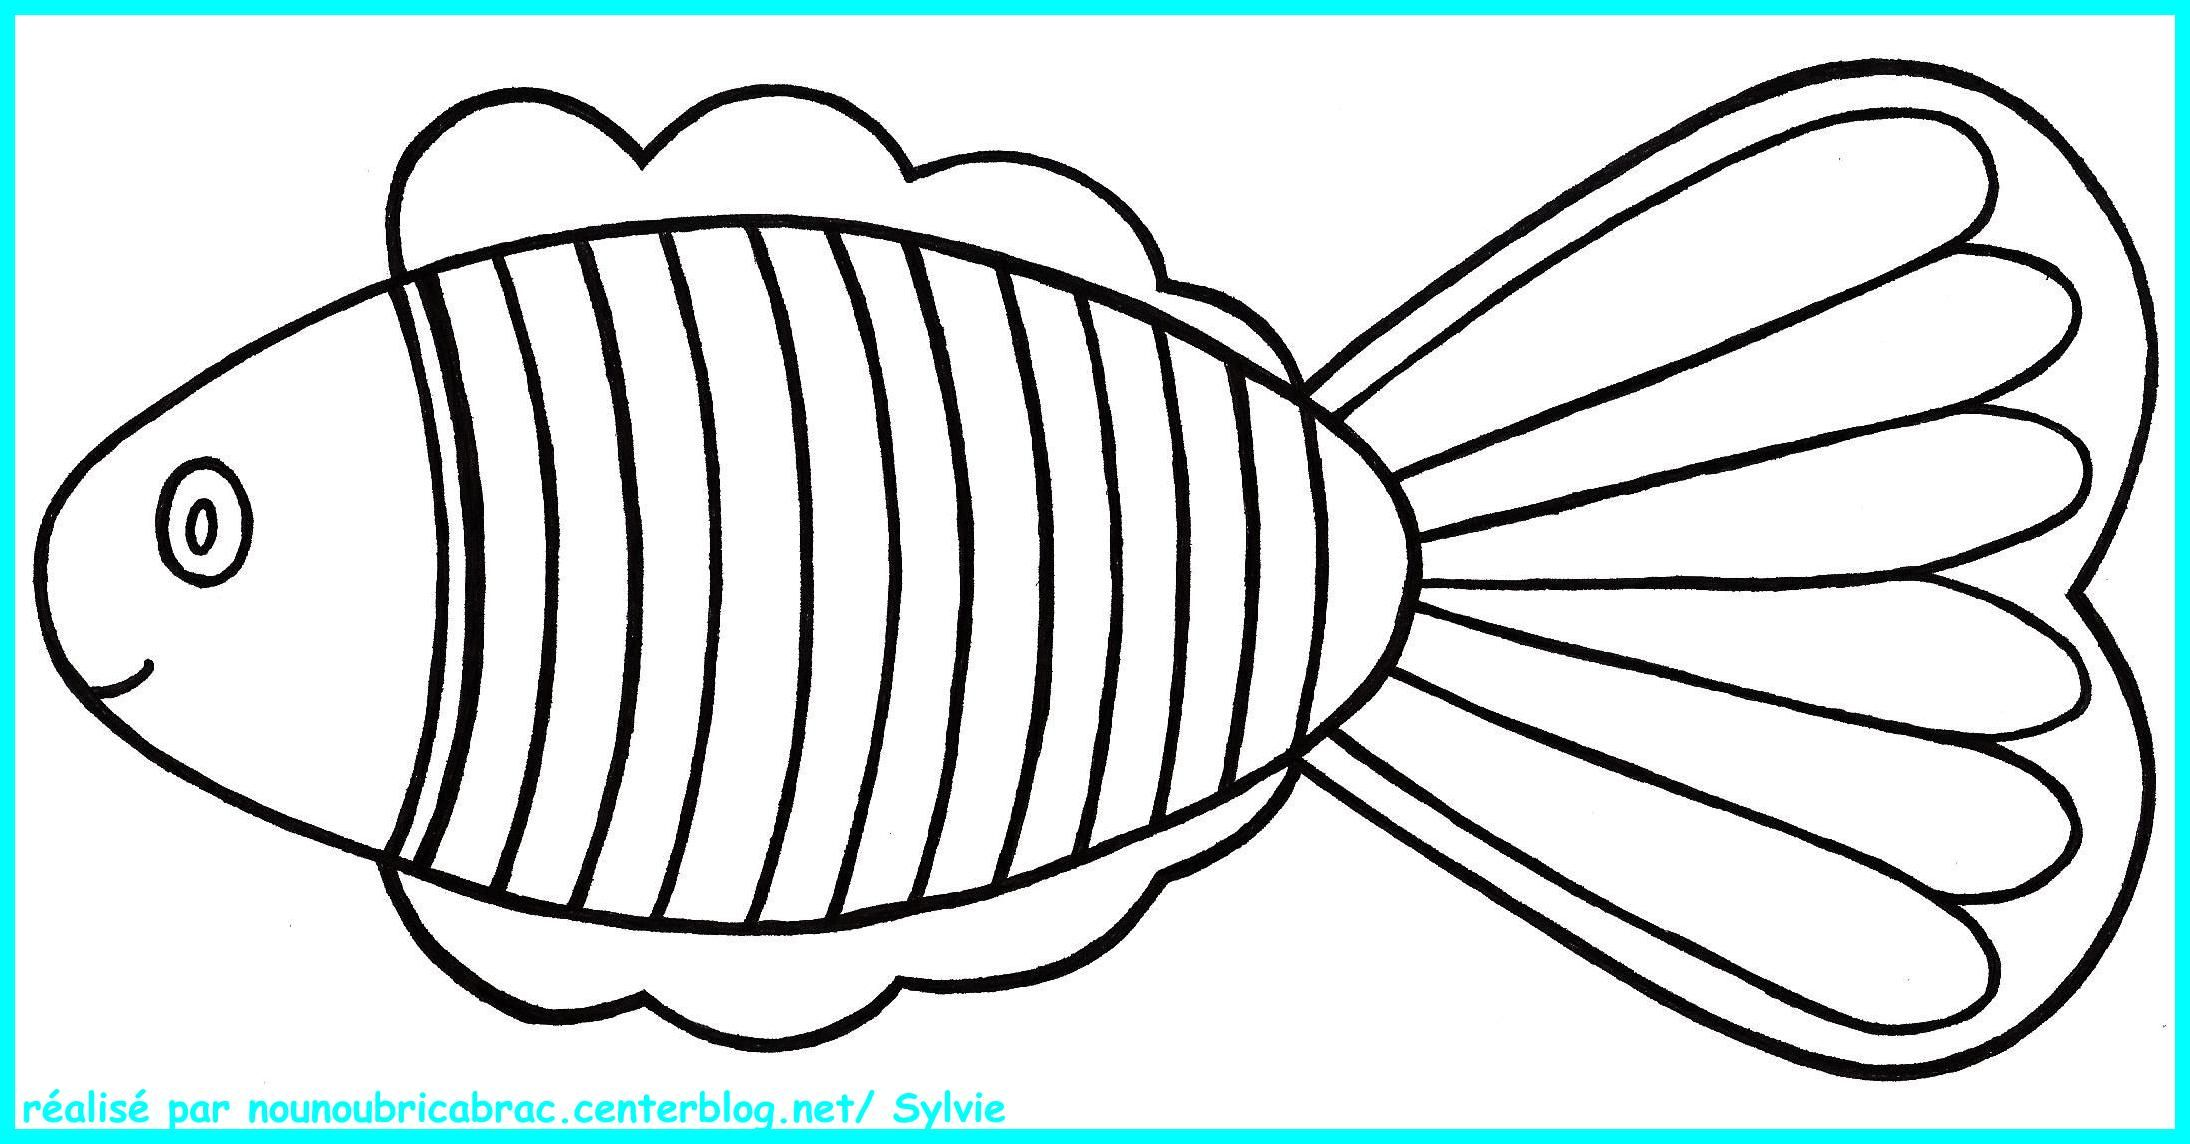 Poisson a colorier - Poisson dessin ...